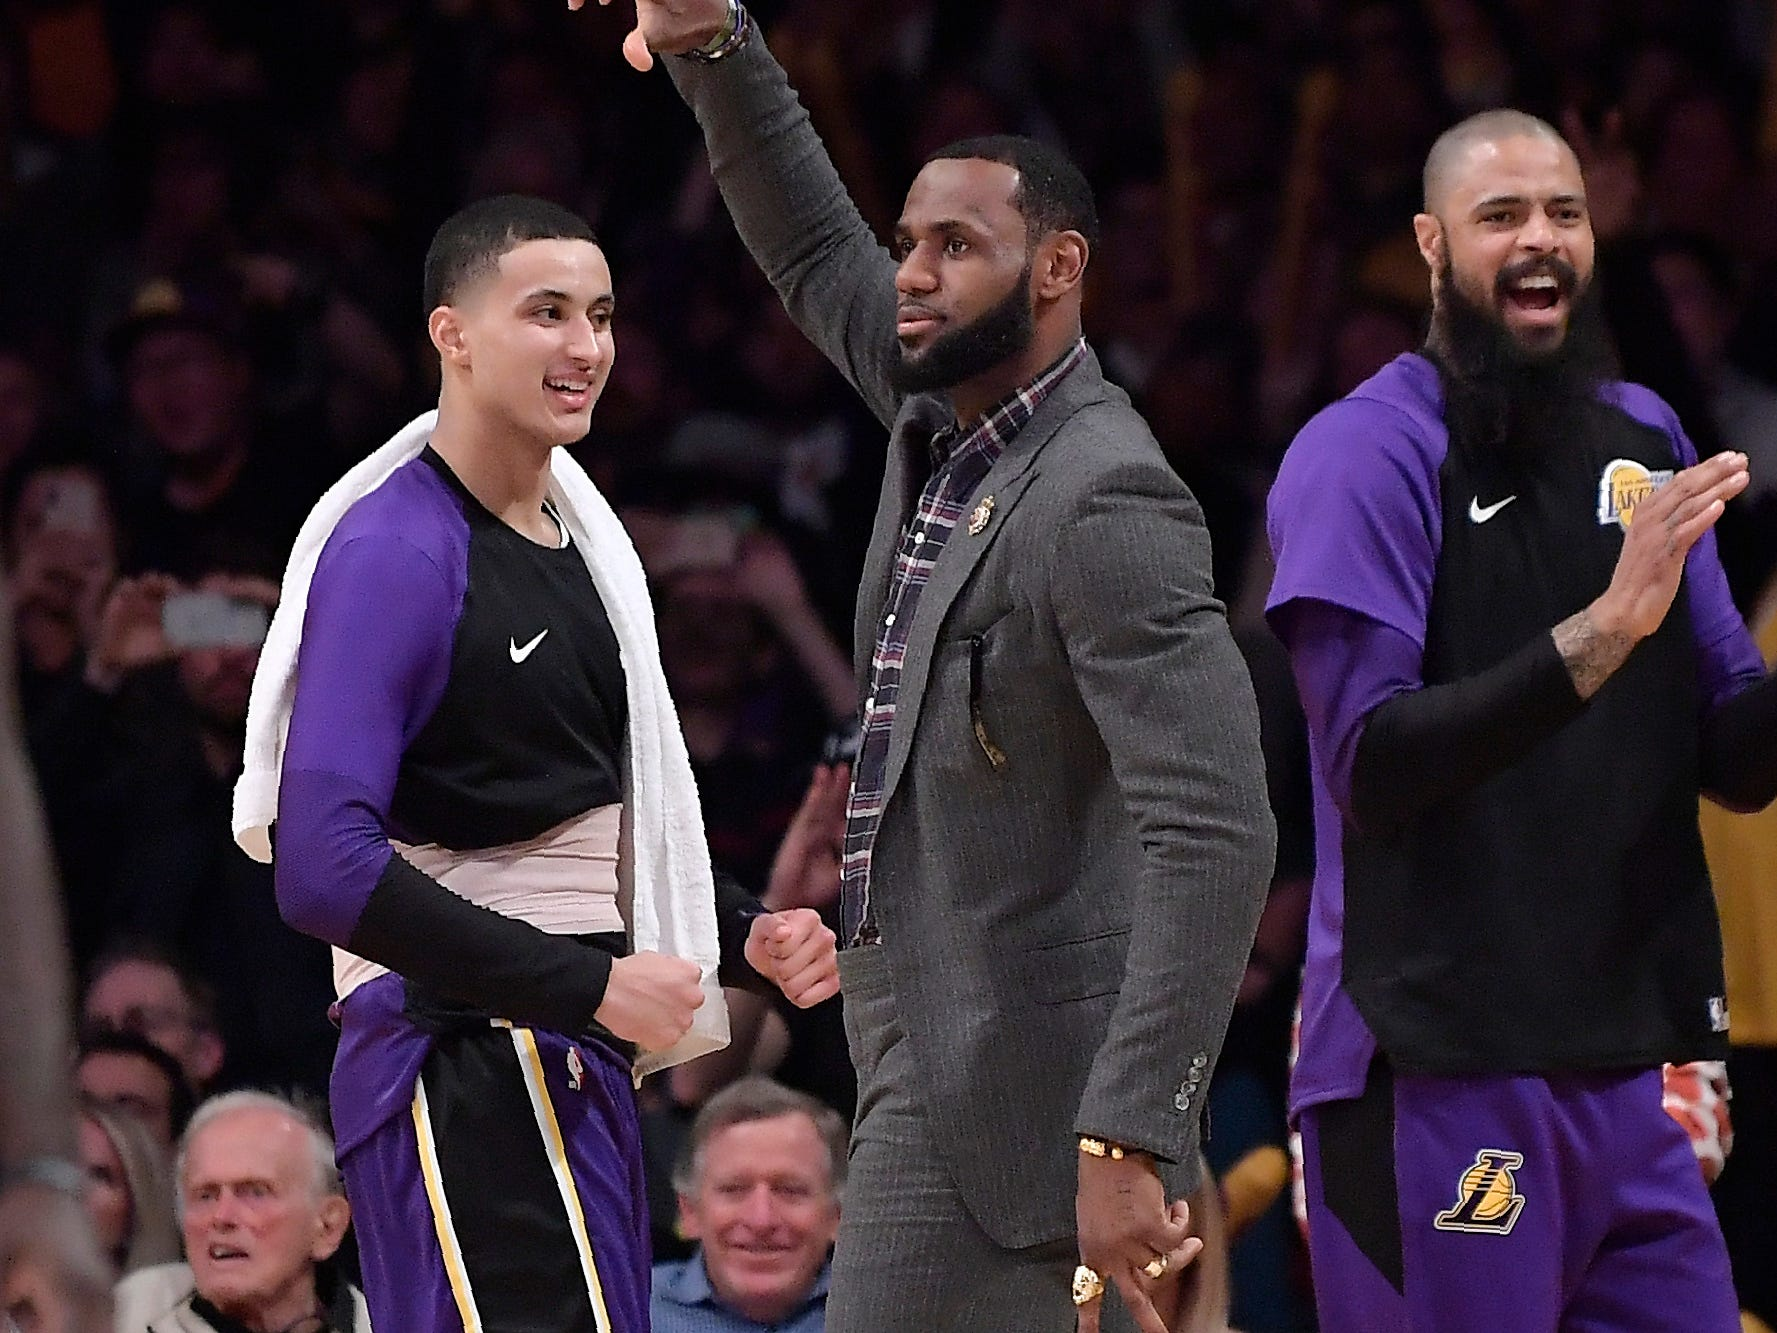 Los Angeles Lakers forward LeBron James, center, celebrates along with forward Kyle Kuzma, left, and center Tyson Chandler after the Lakers scored during the second half.